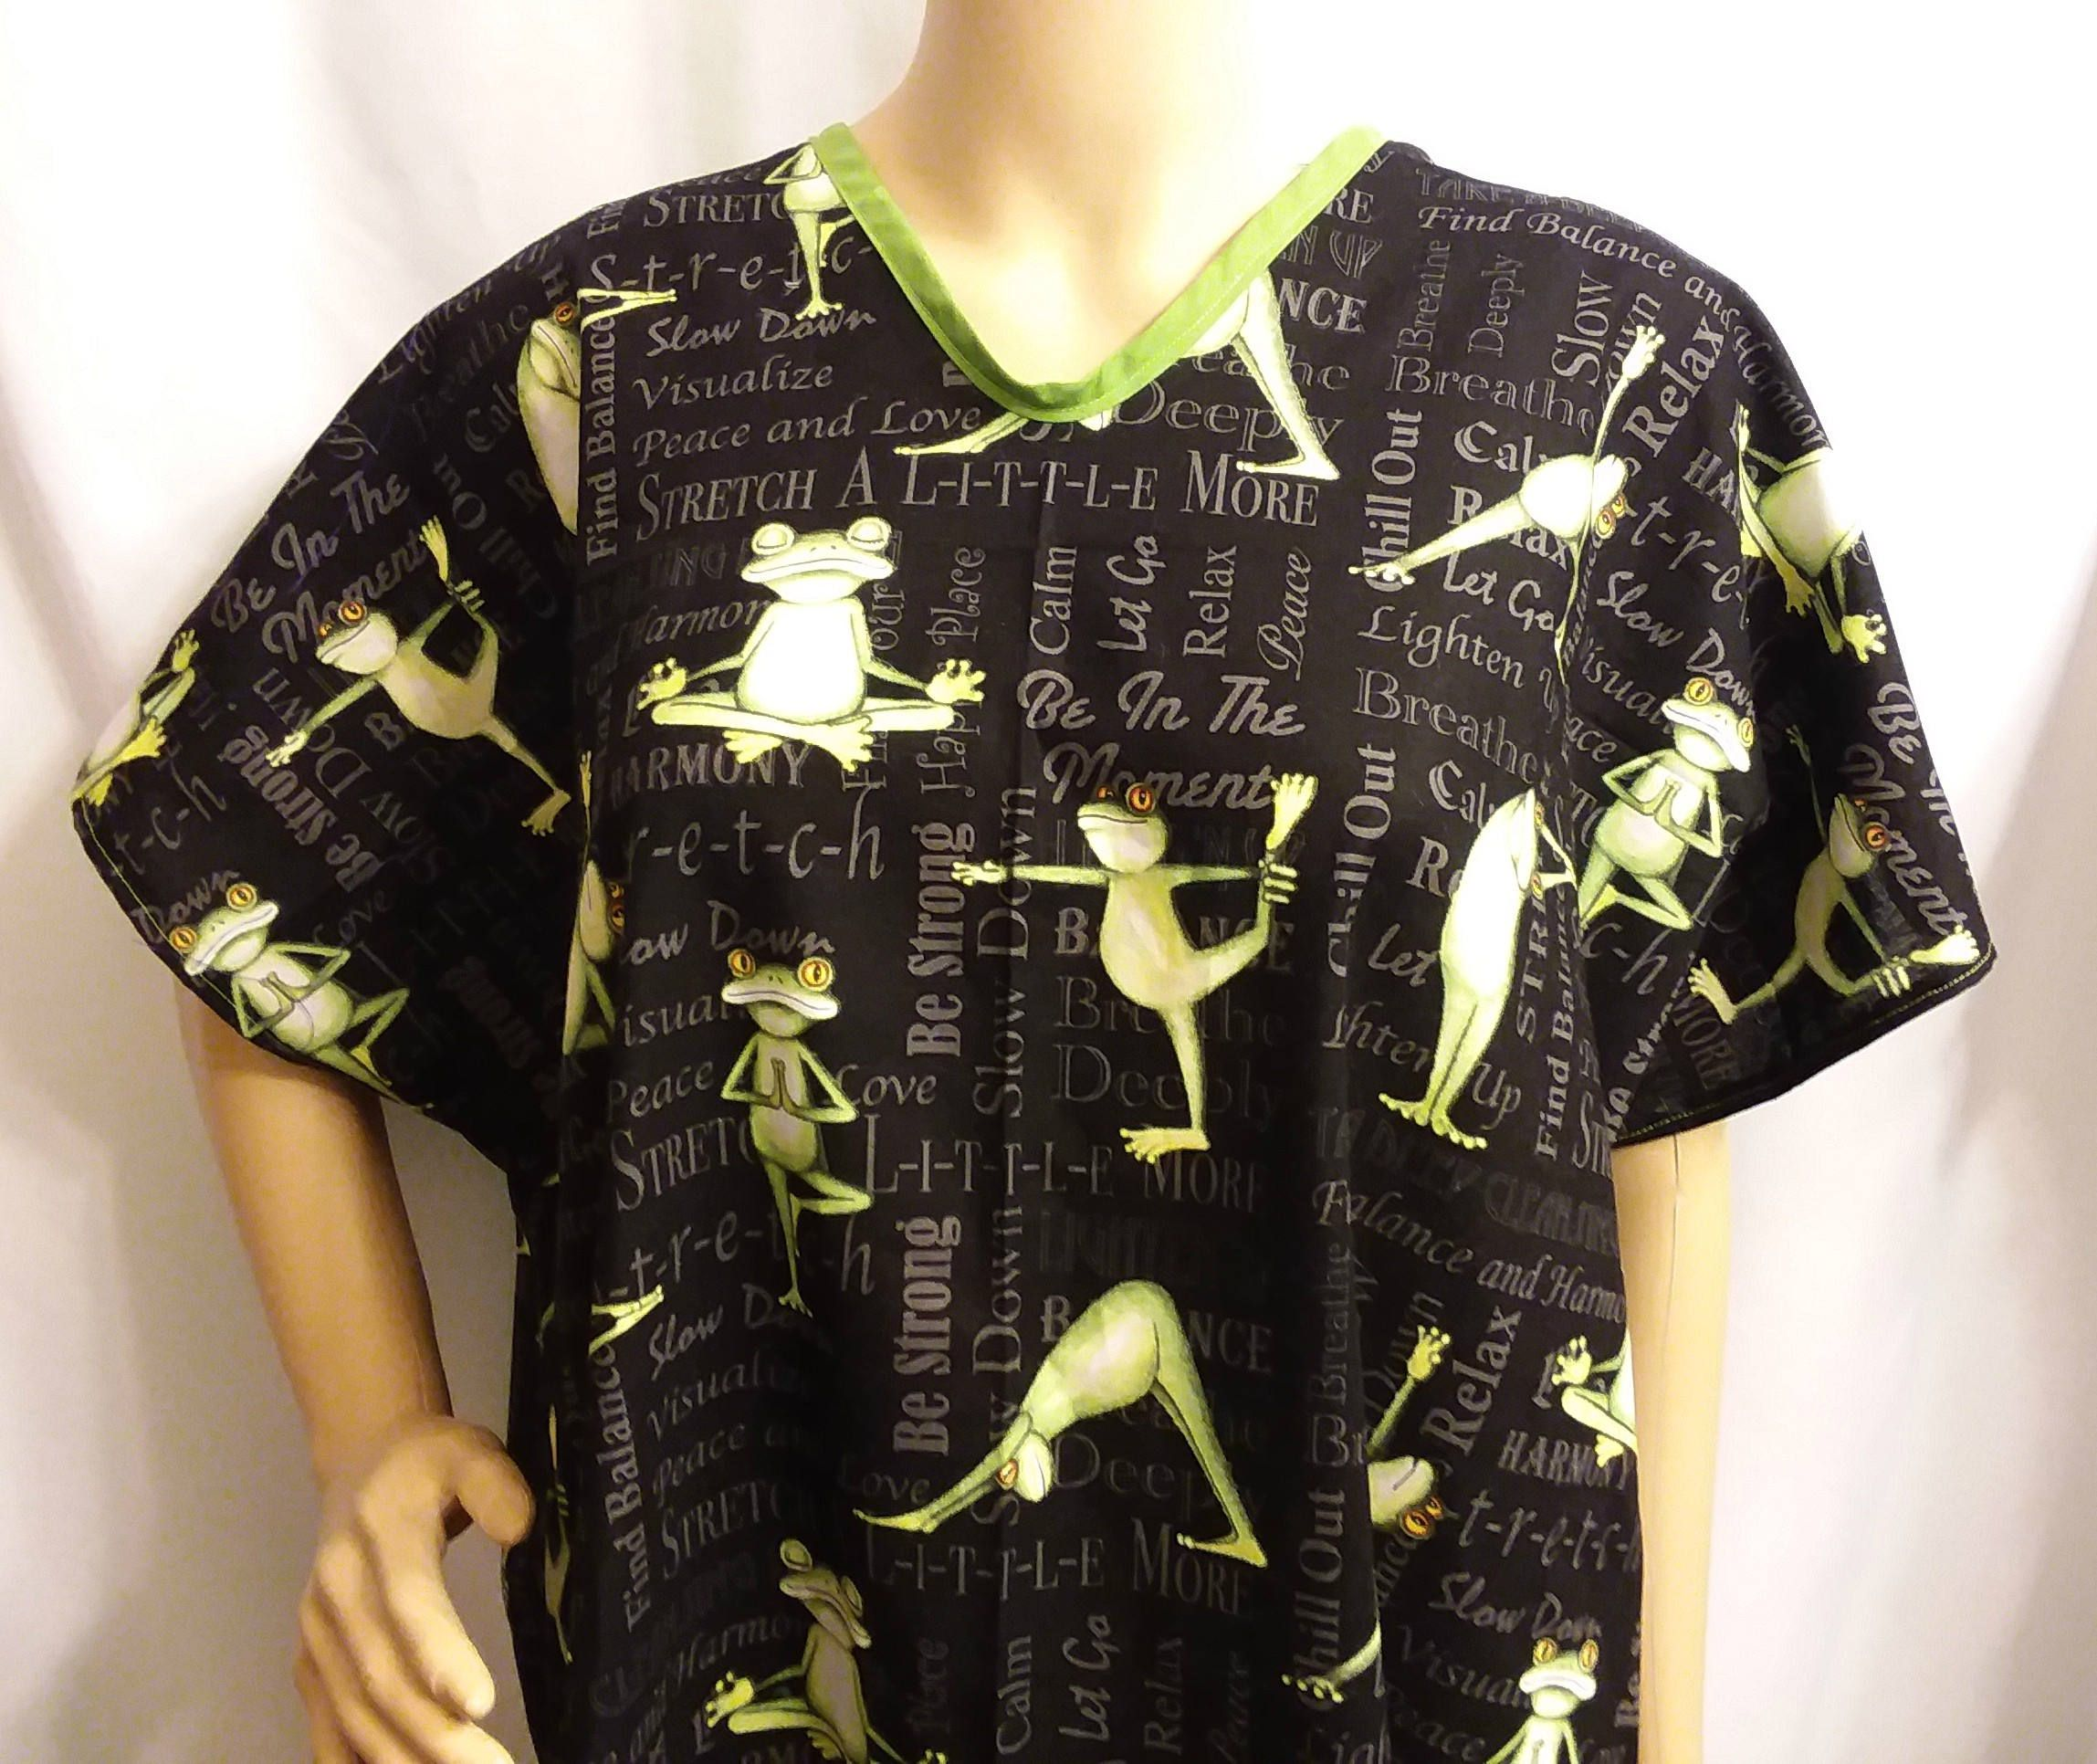 Hospital Gown for Bed bound Post Surgery COTTON Gown Fits Regular to ...